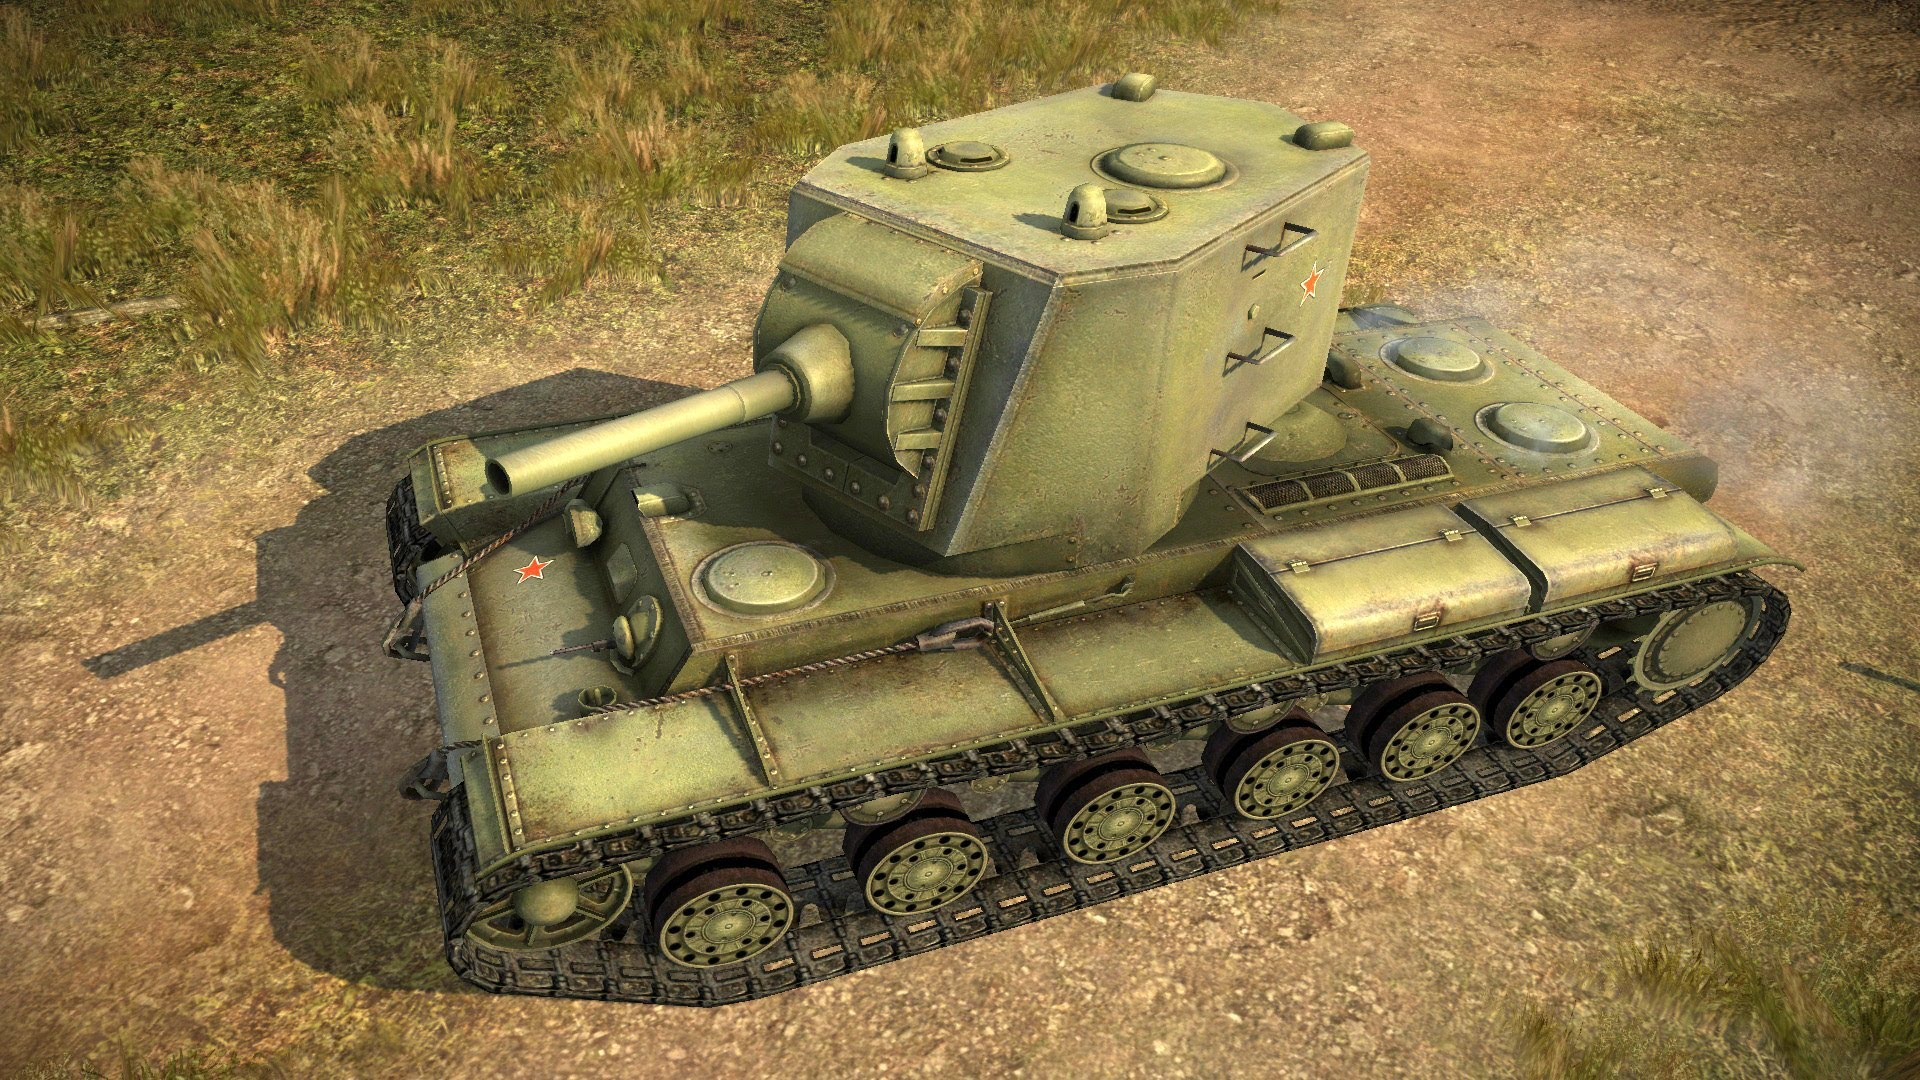 raseiniai singles Kv-1s, kv-2s, raseiniai, history - posted in general discussion: a nice write up on the history of the kvs  1, 2, 1s, and their role and success and obsolescence in ww2.